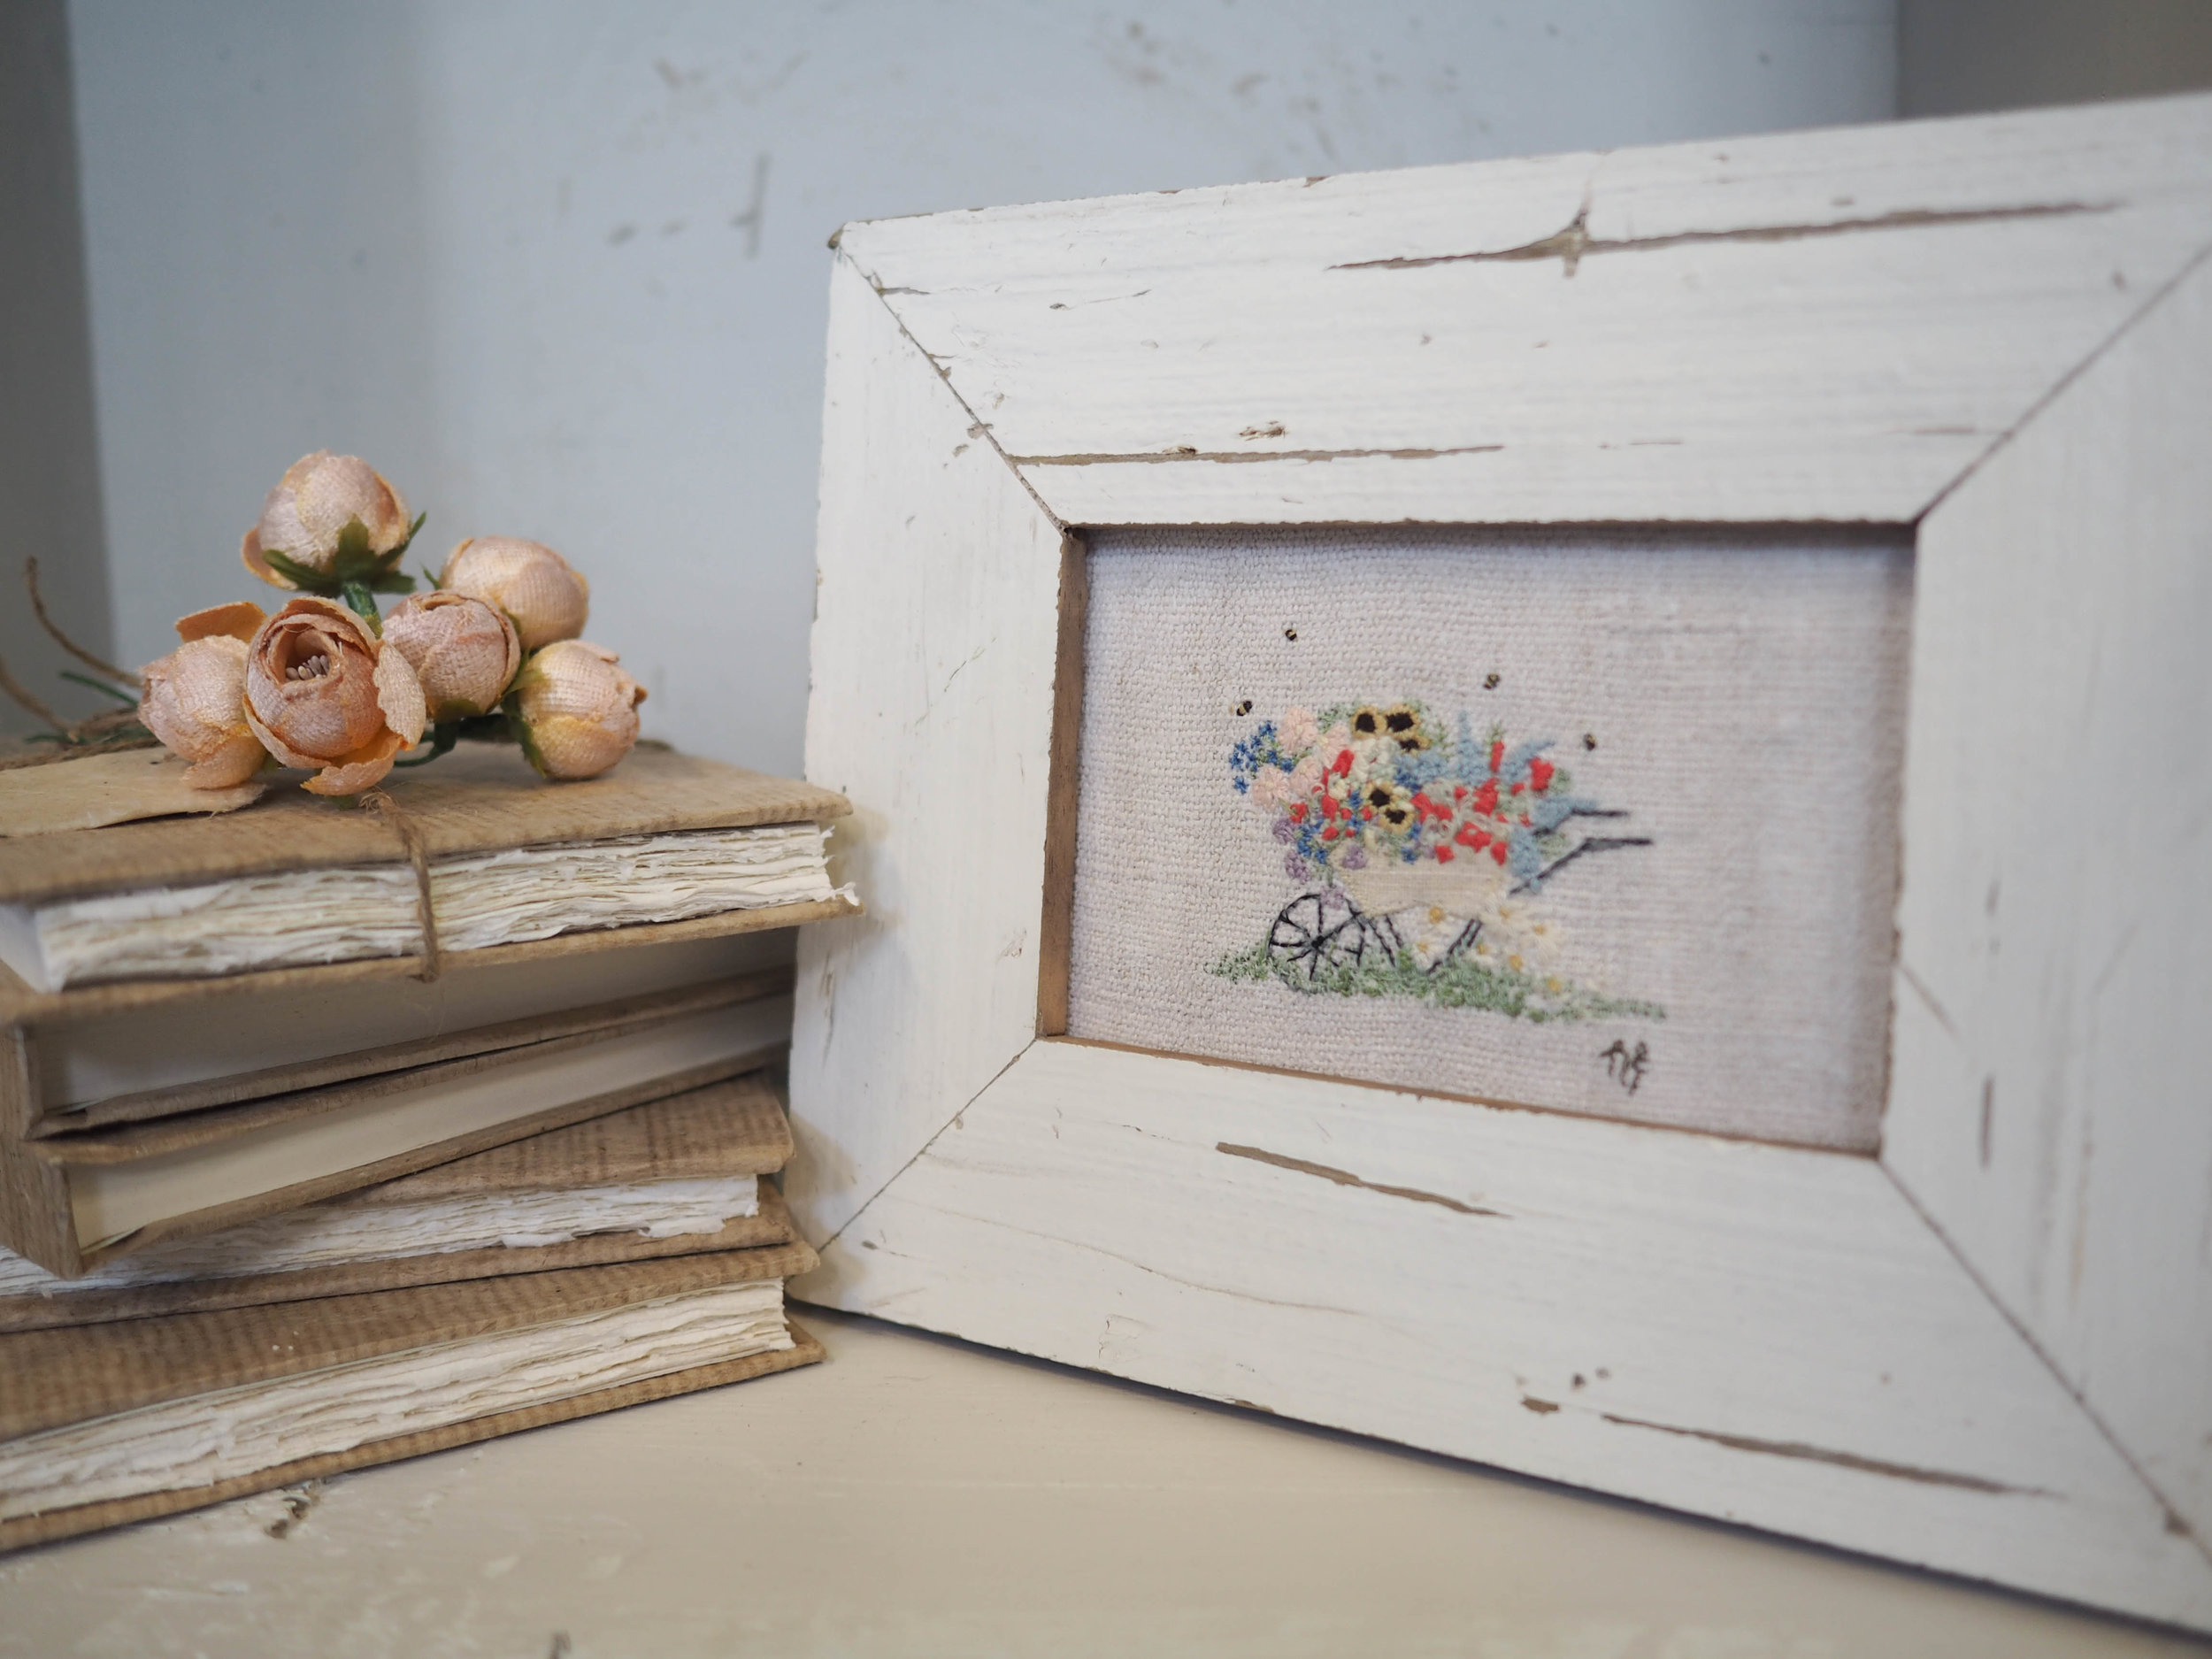 A stack of notebooks with beautiful handmade paper and my 'Day at the Allotment' embroidery framed with reclaimed wood.